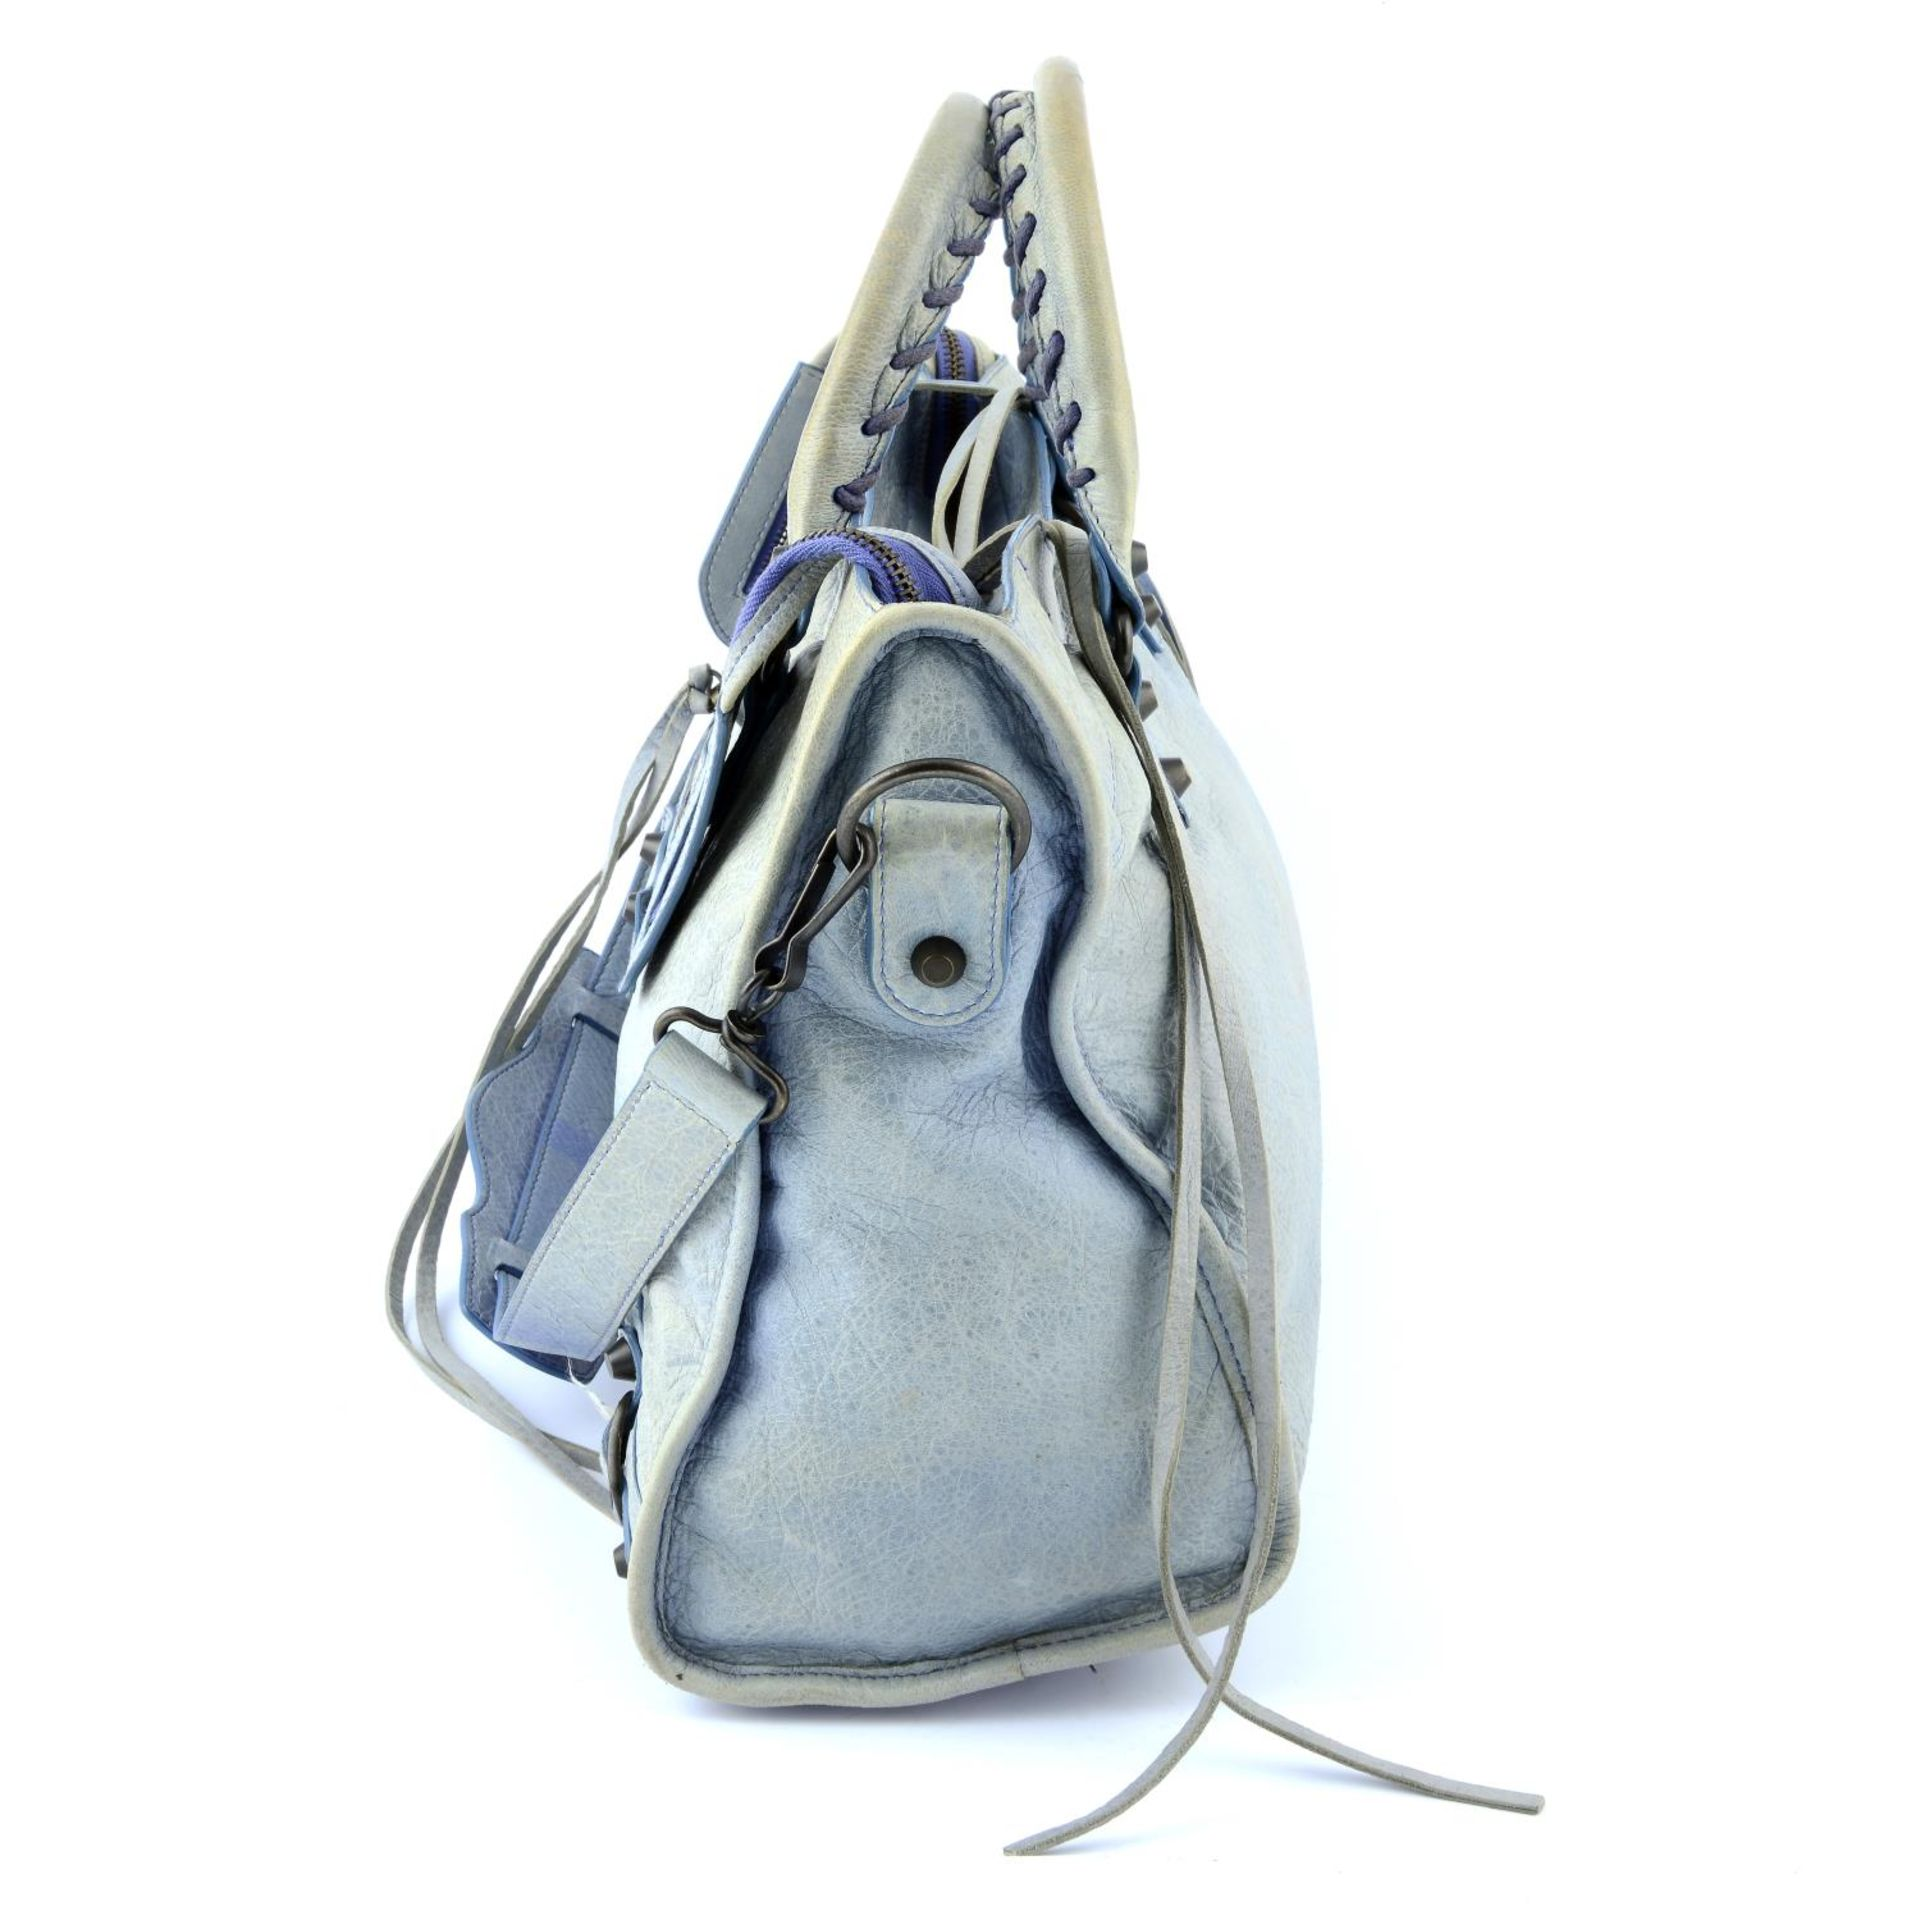 BALENCIAGA - a light blue Classic City handbag. - Image 4 of 6